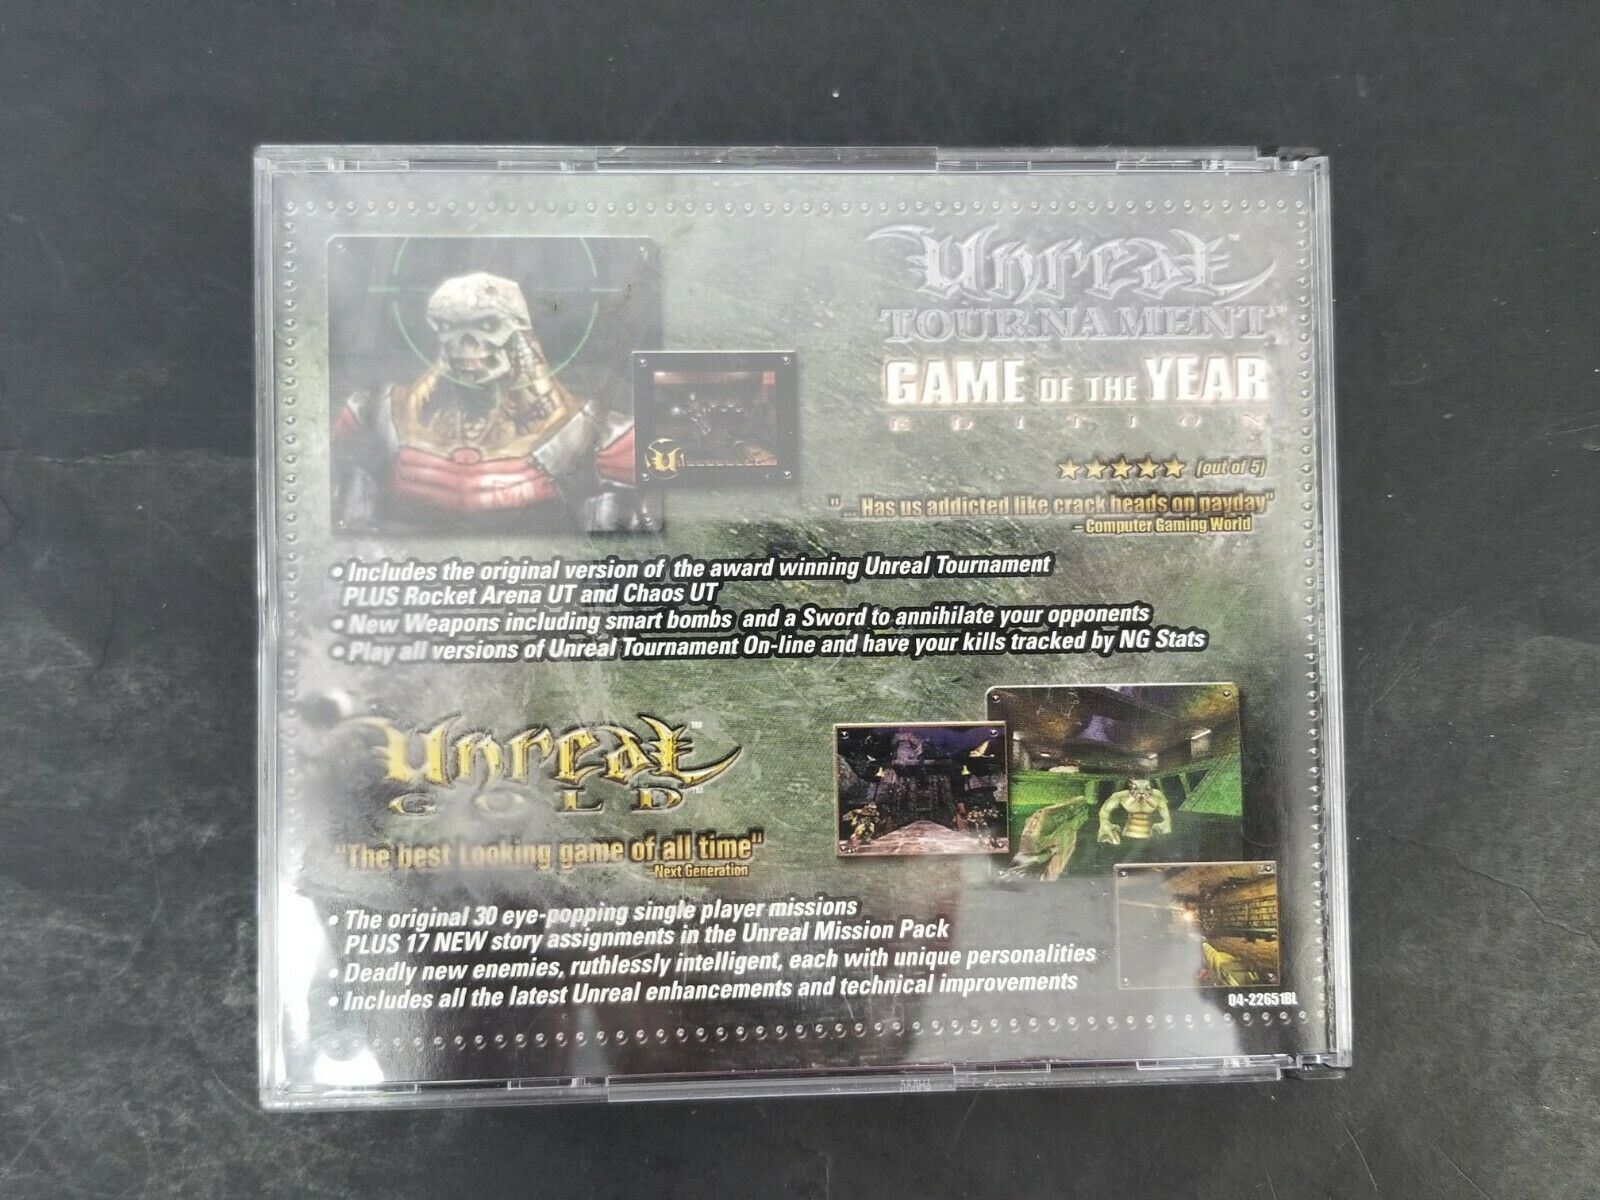 Totally Unreal PC Game CD ROM 2001 4 Disc Set Rated M Mature Computer Video Game